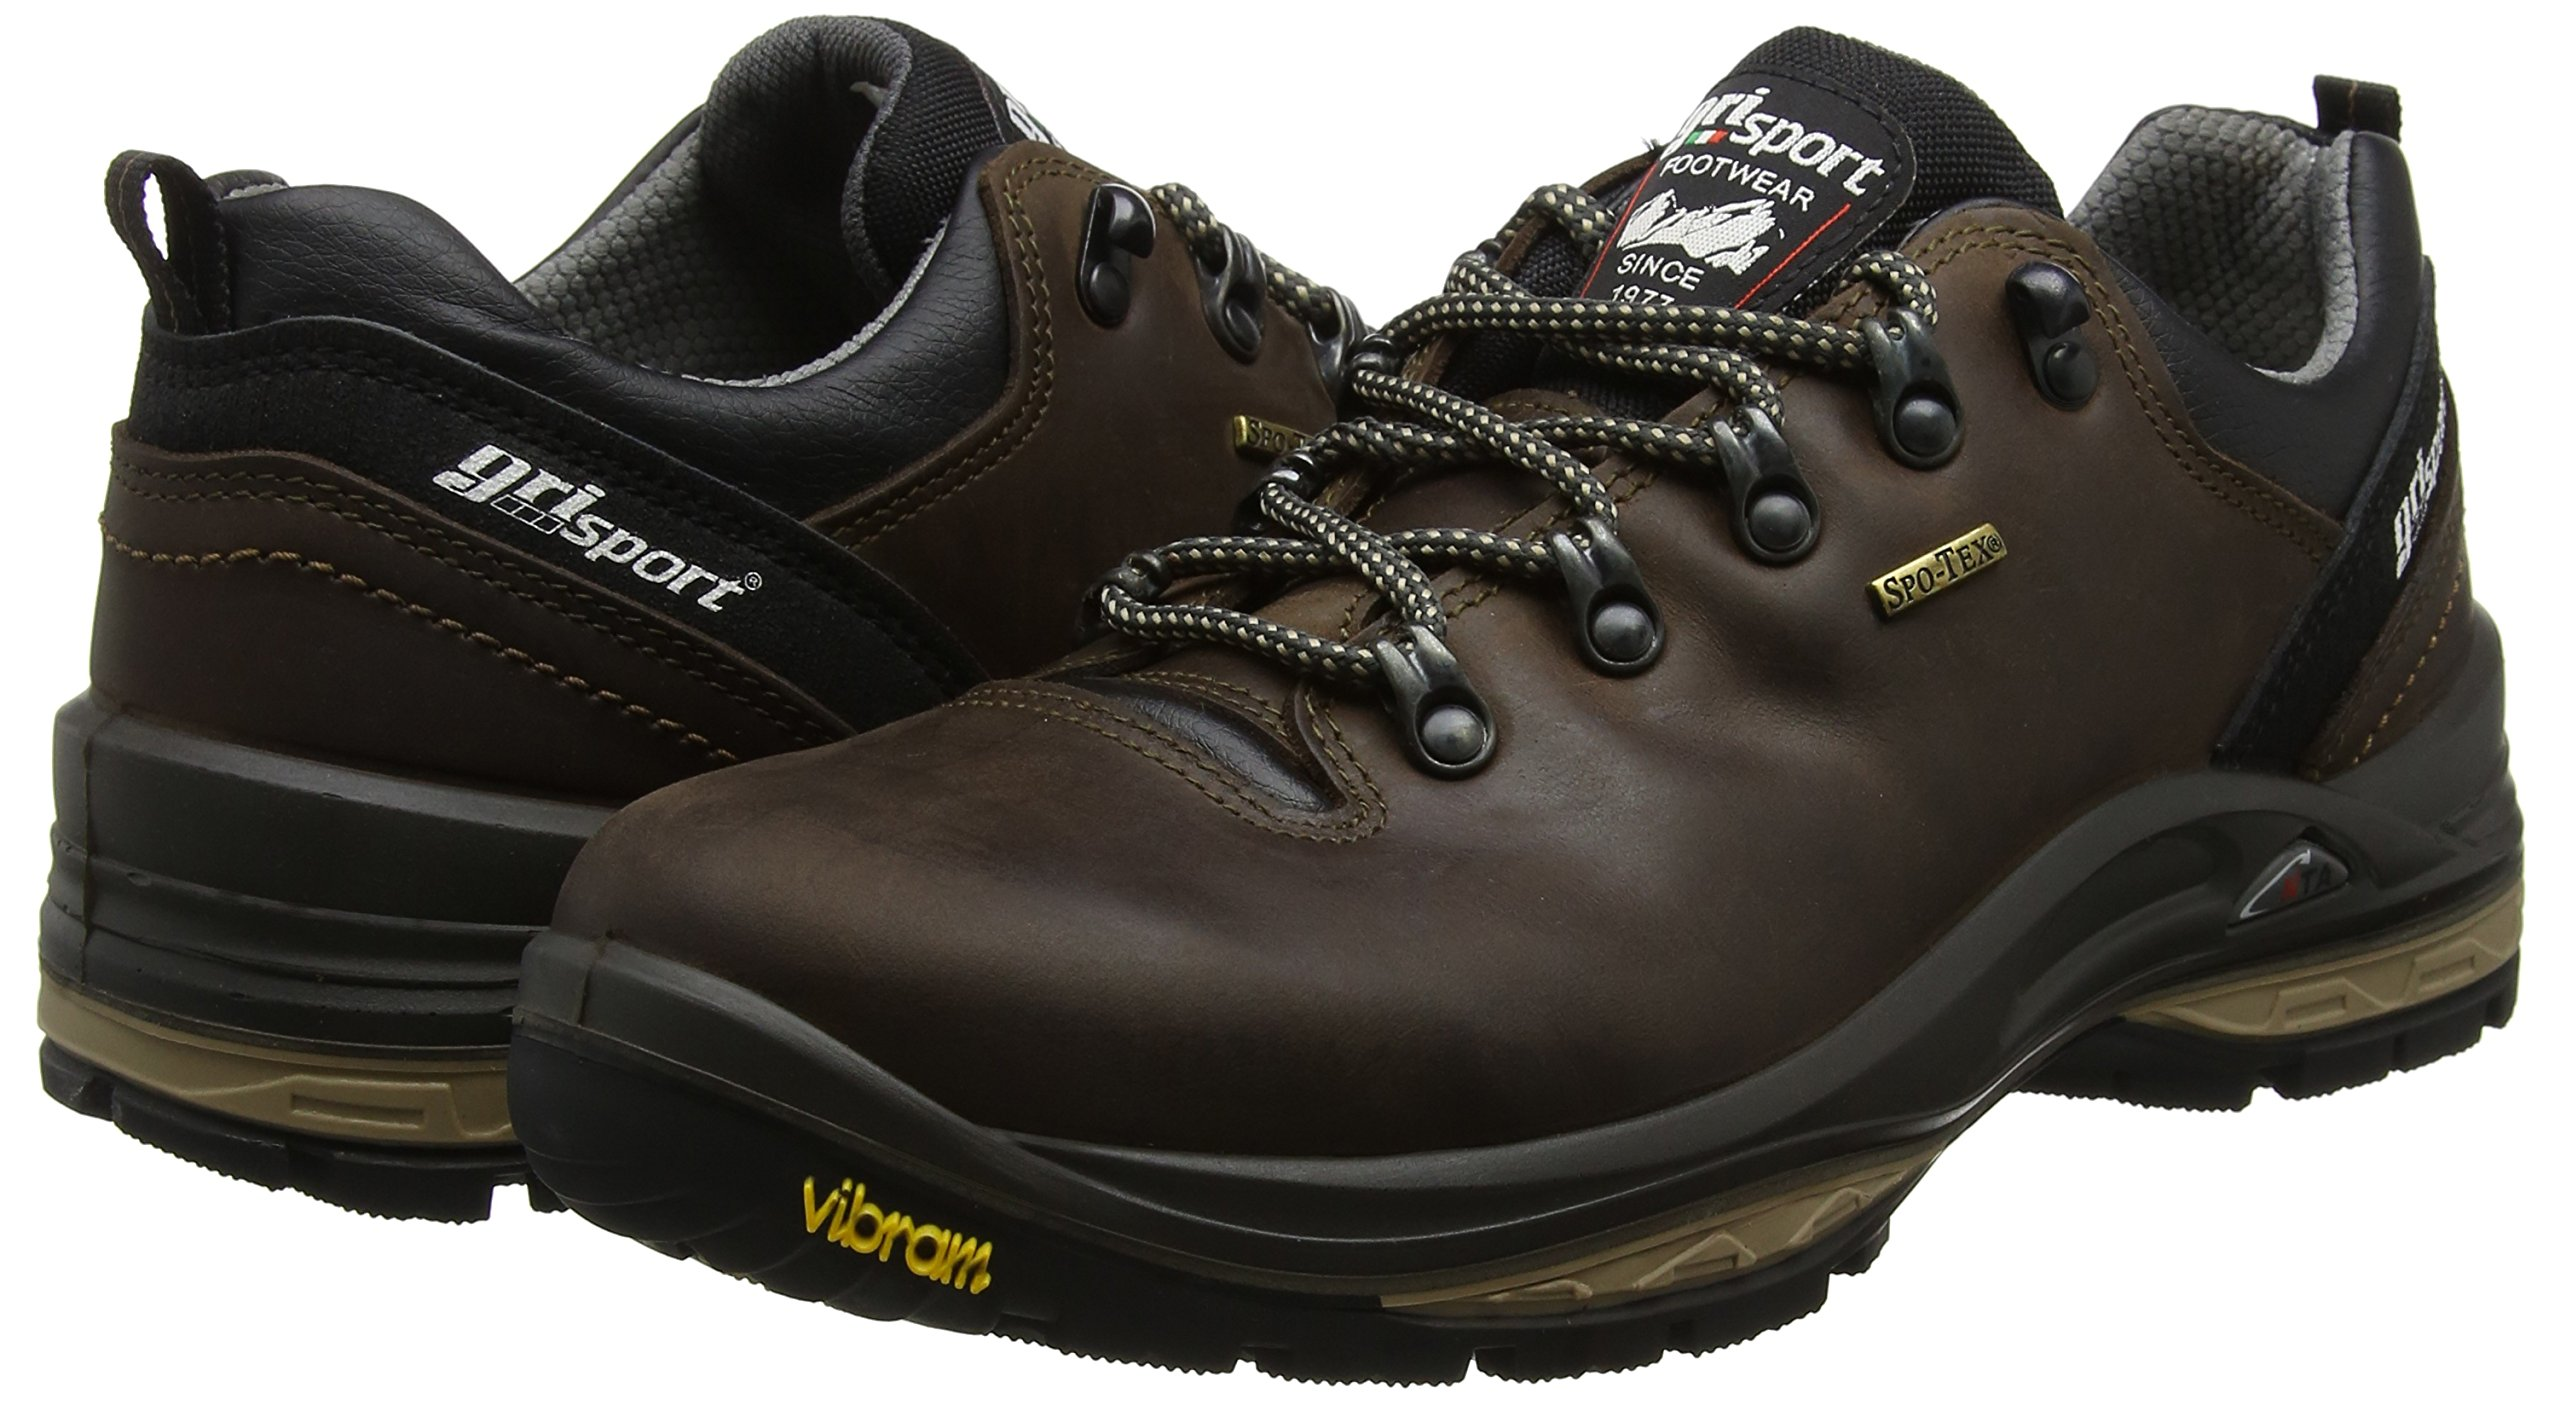 Grisport Men's Warrior Low Rise Hiking Boots 5